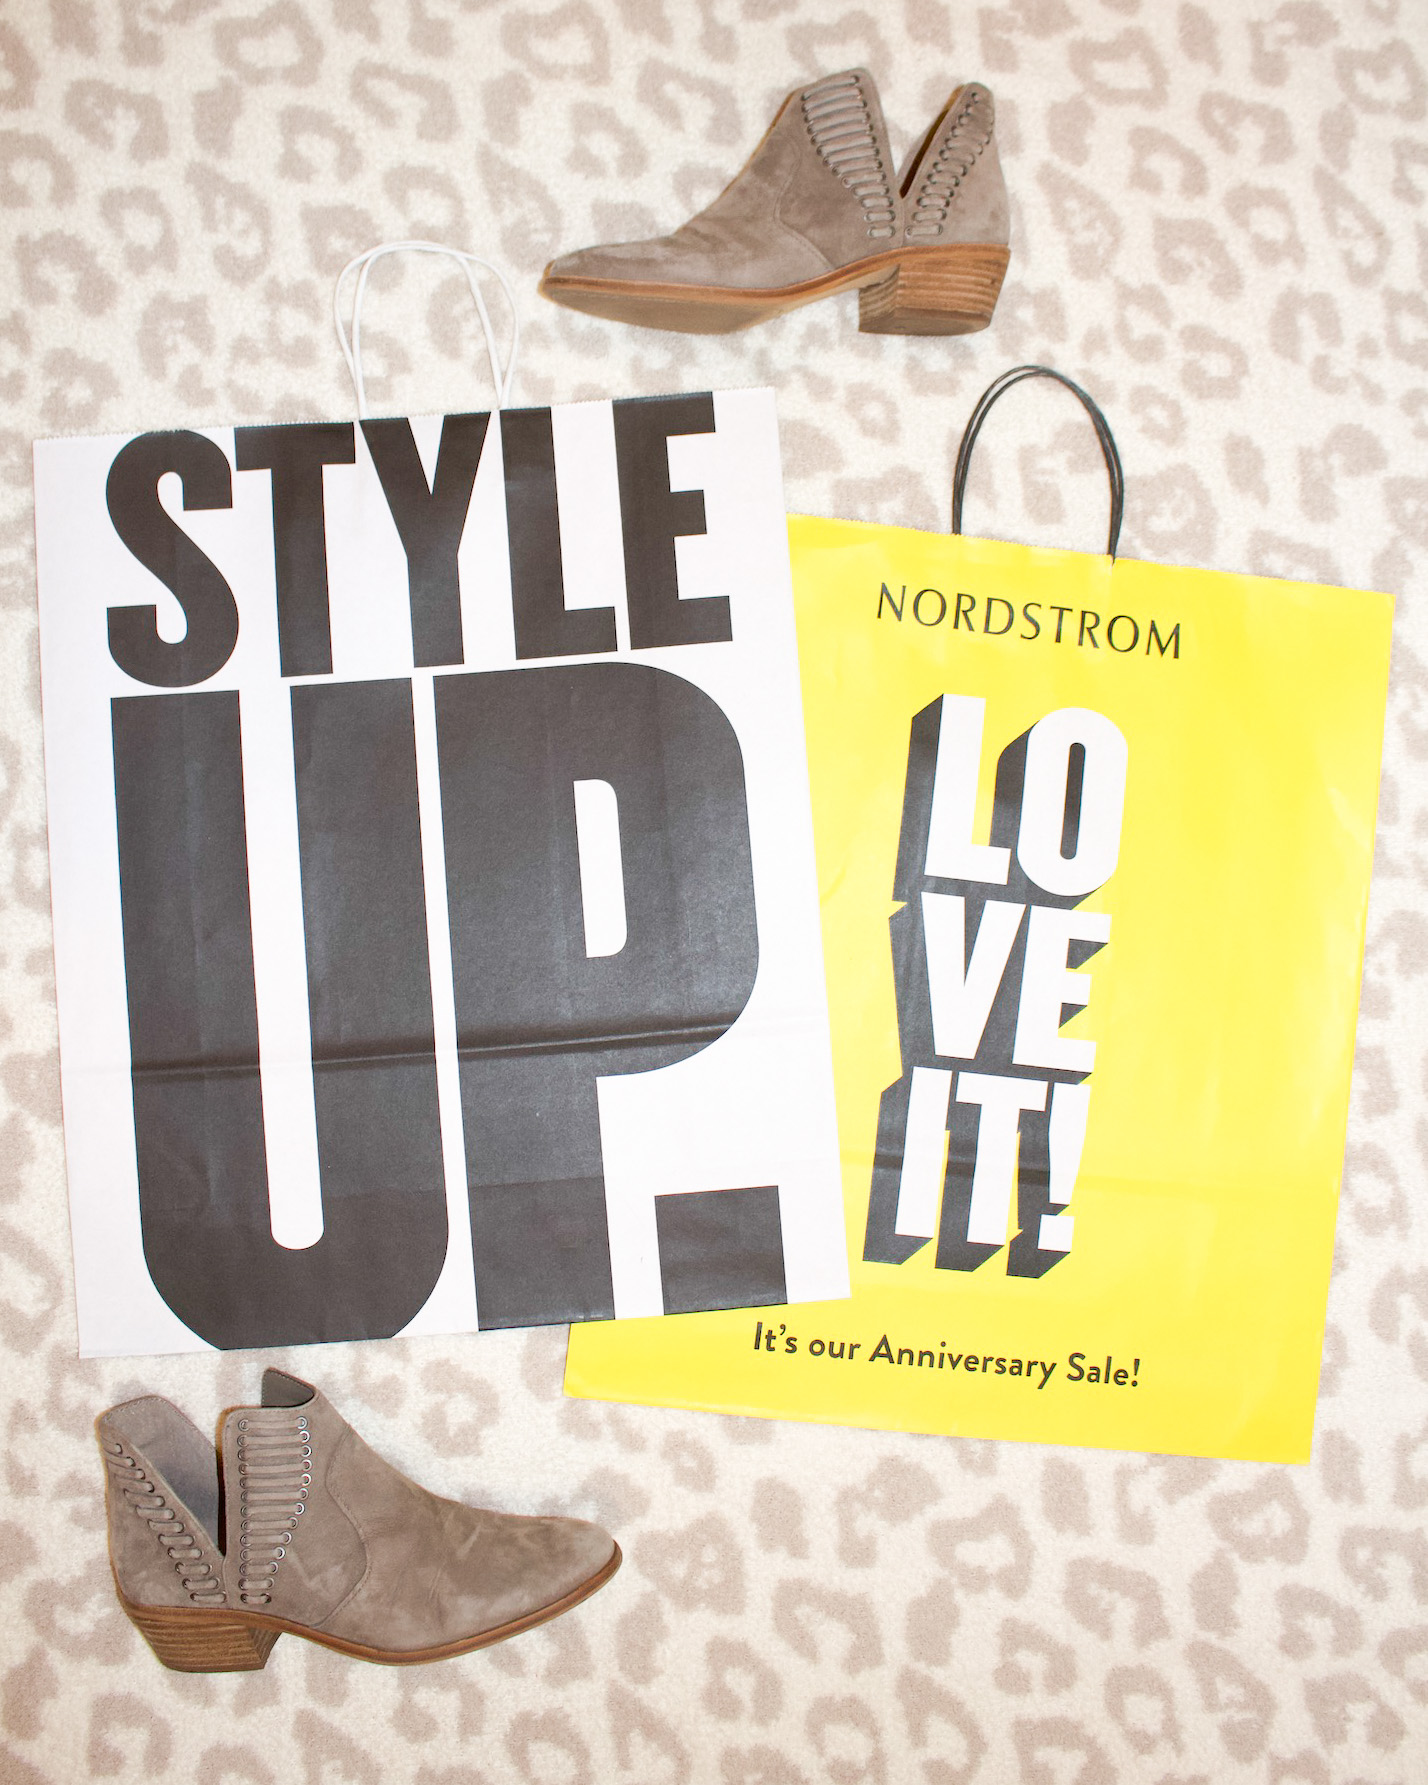 nordstrom anniversary sale 2020 sale dates and catalog